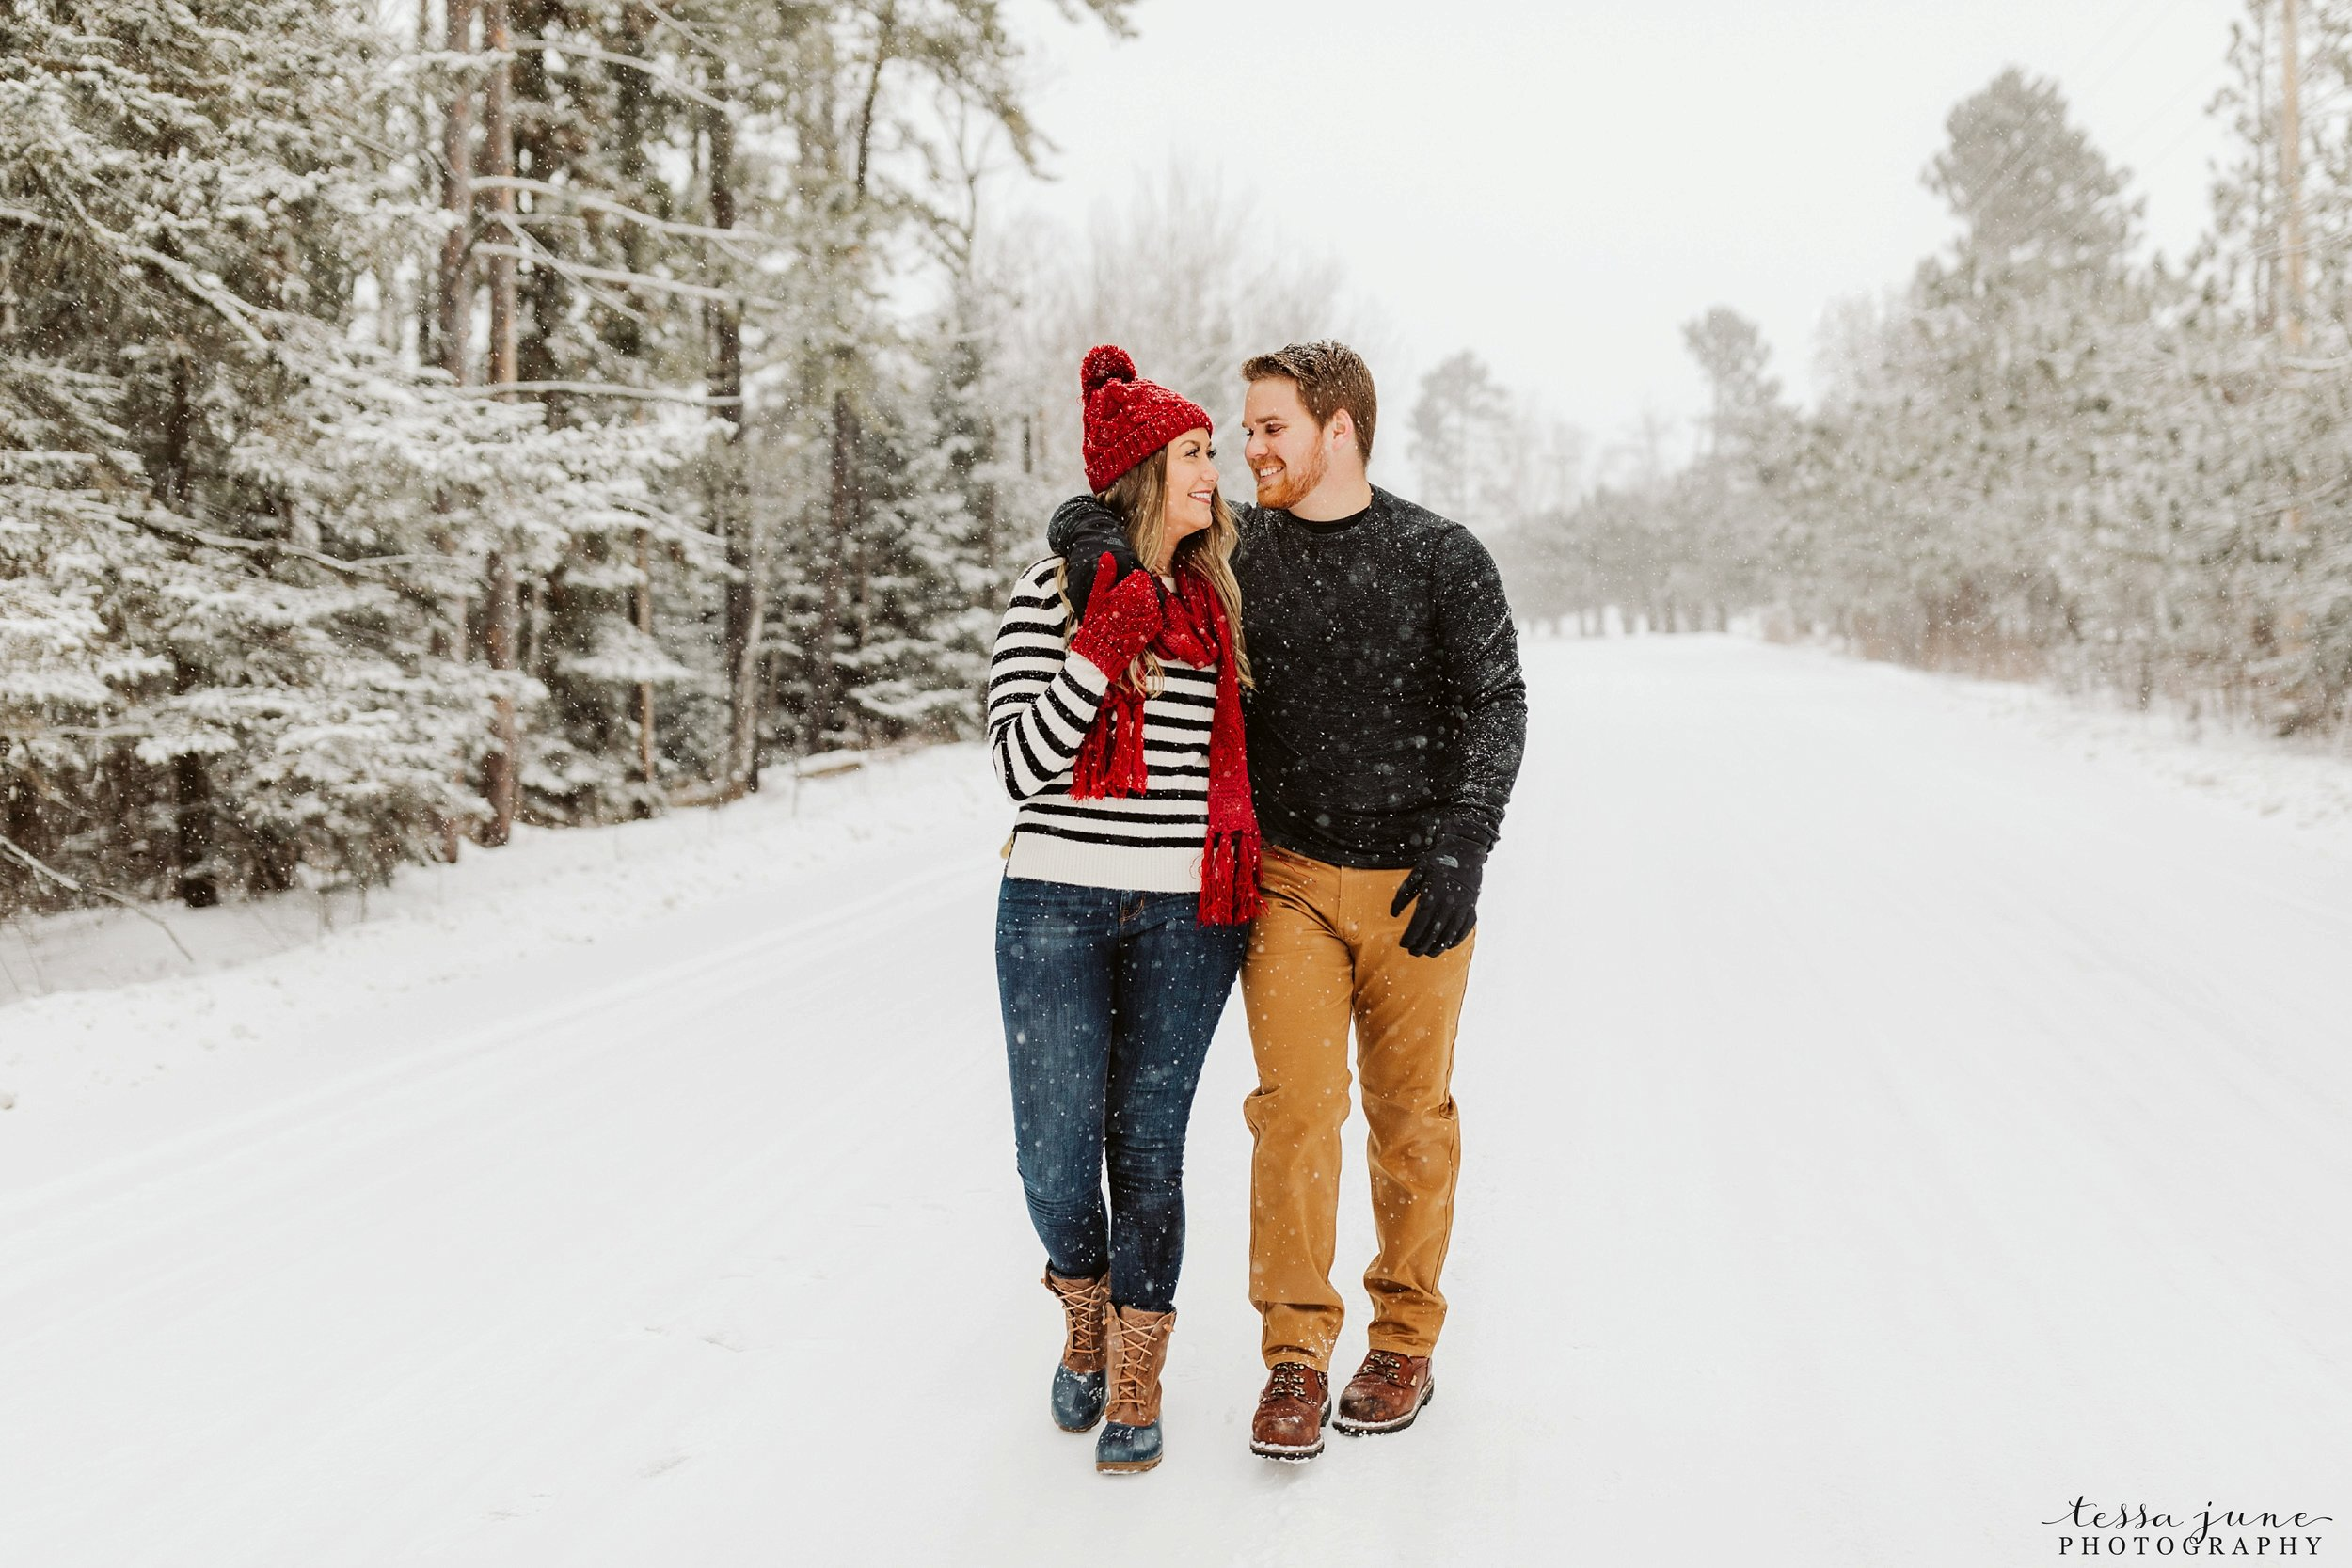 duluth-winter-engagement-forest-photos-during-snow-storm-38.jpg